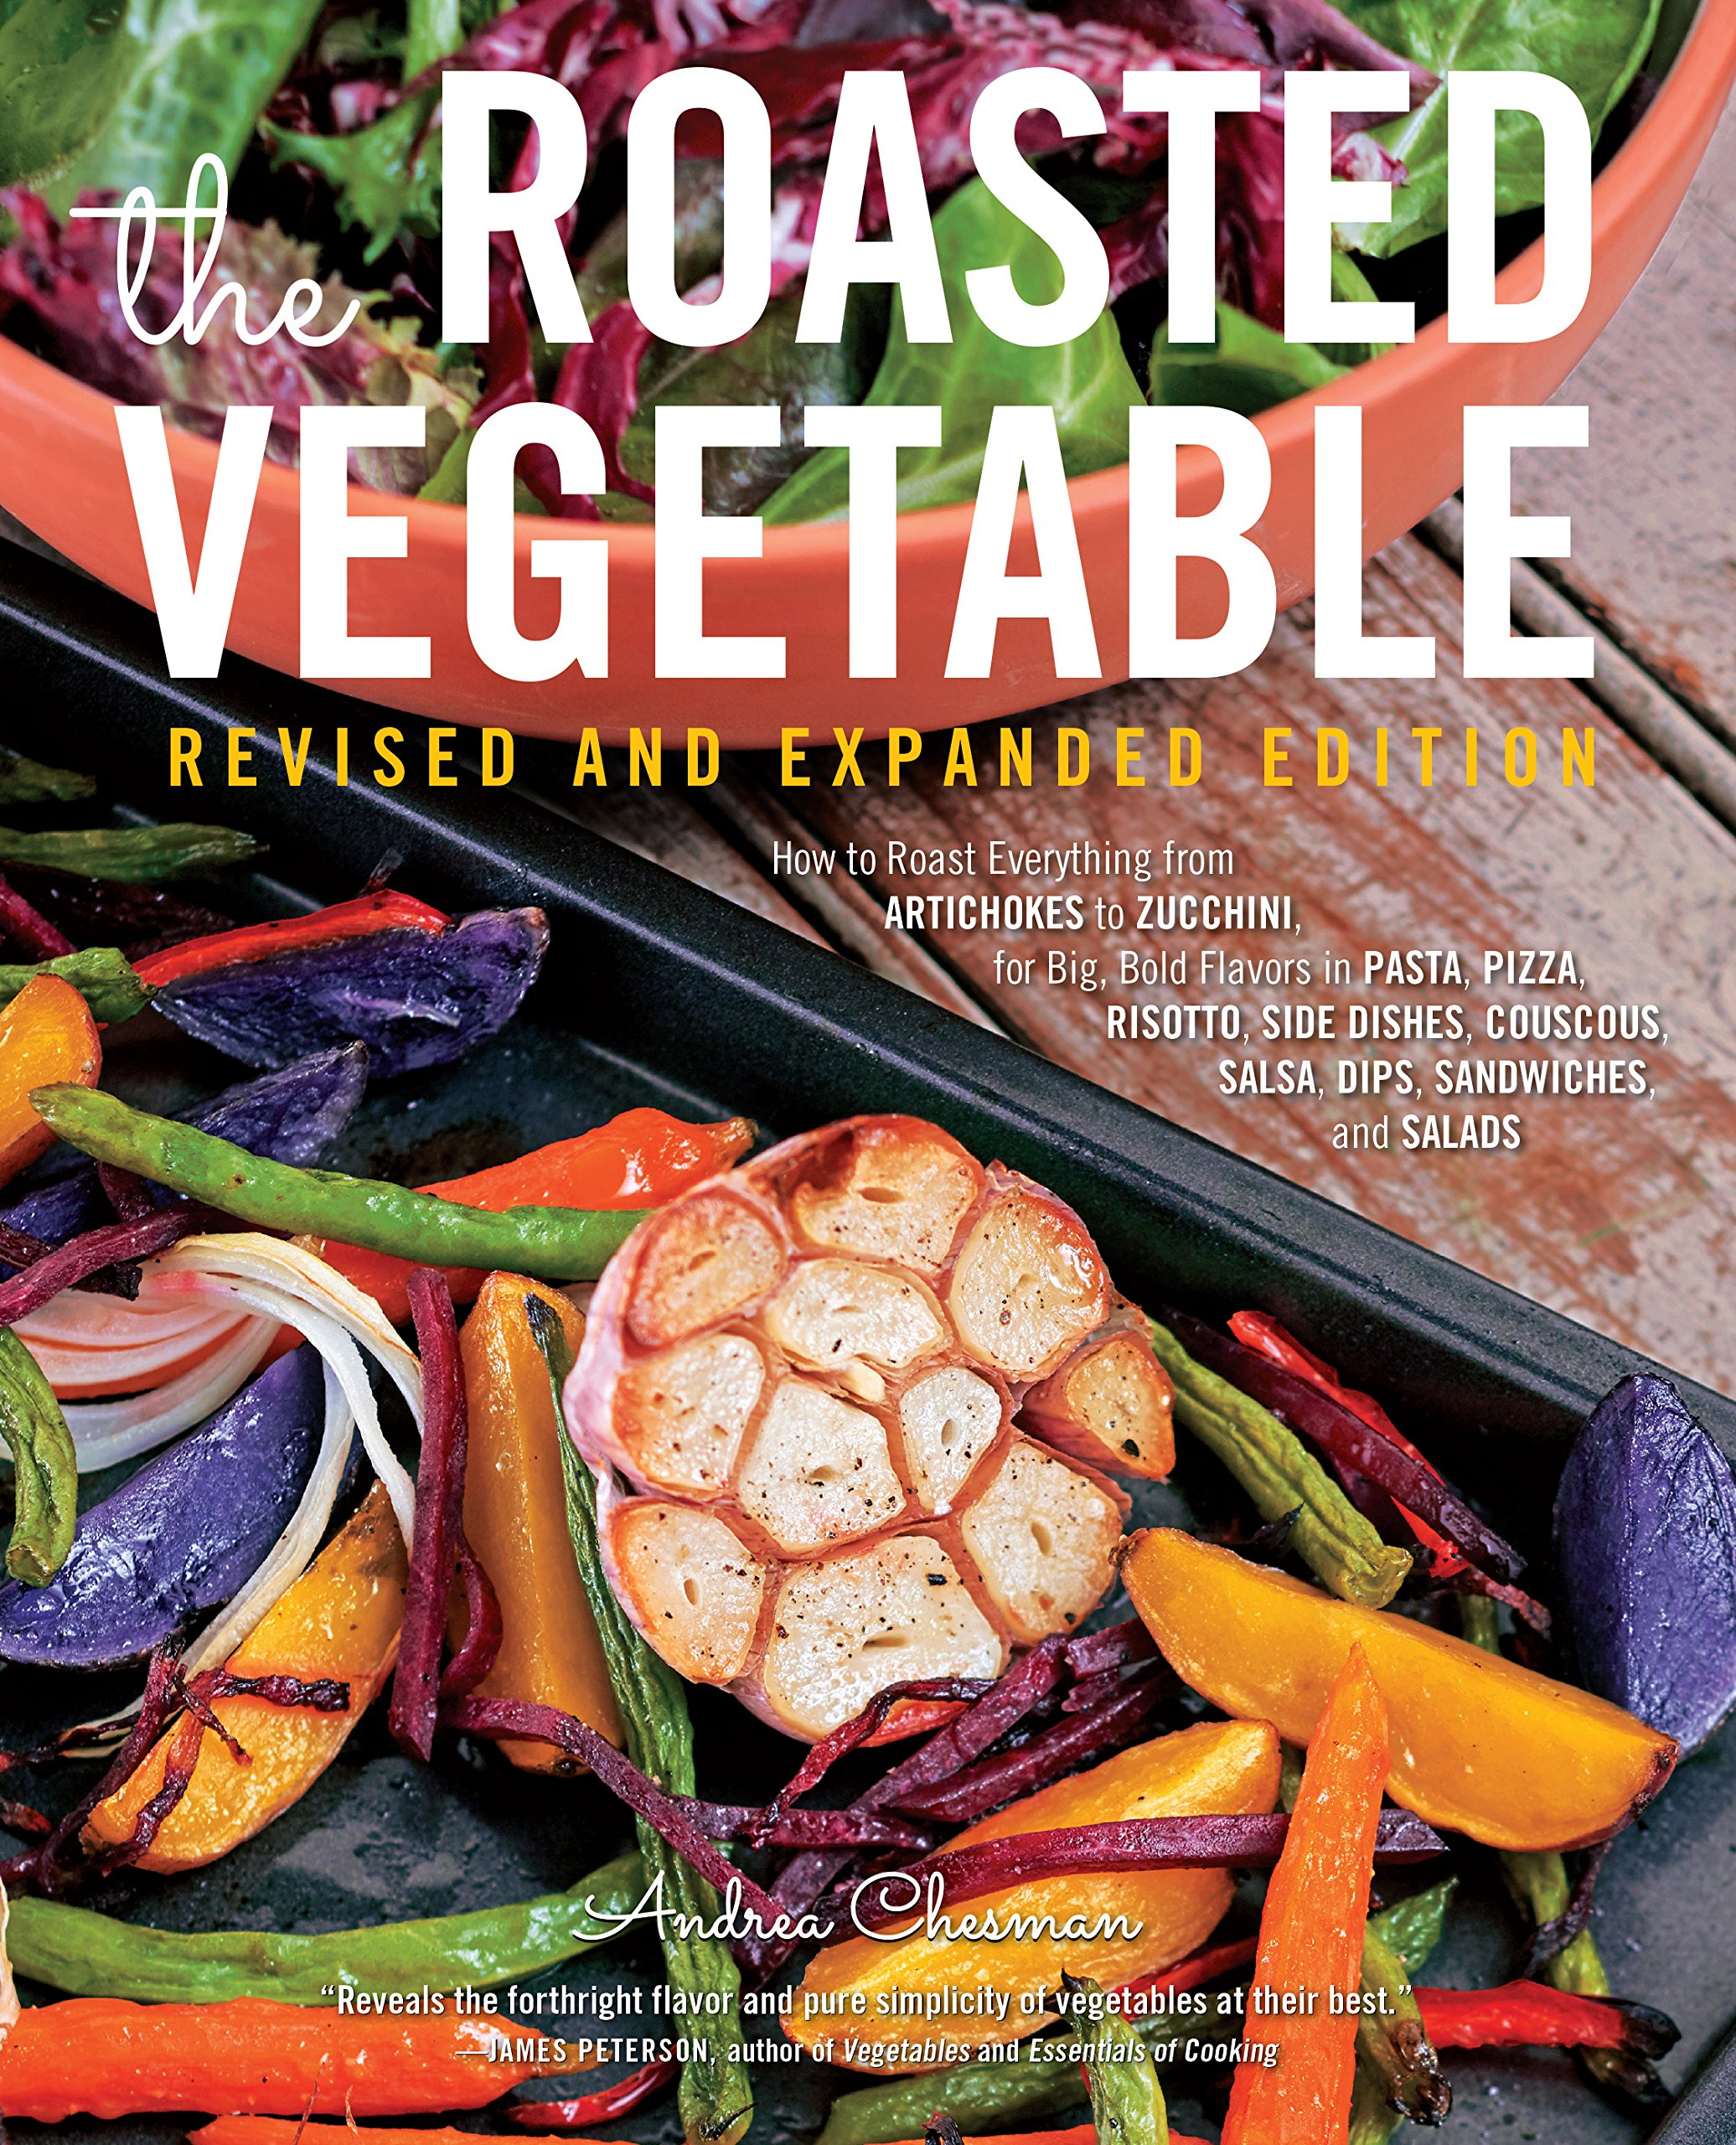 ... Revised Edition: How to Roast Everything from Artichokes to Zucchini, for Big, Bold Flavors in Pasta, Pizza, Risotto, Side Dishes, Couscous, Salsa, ...